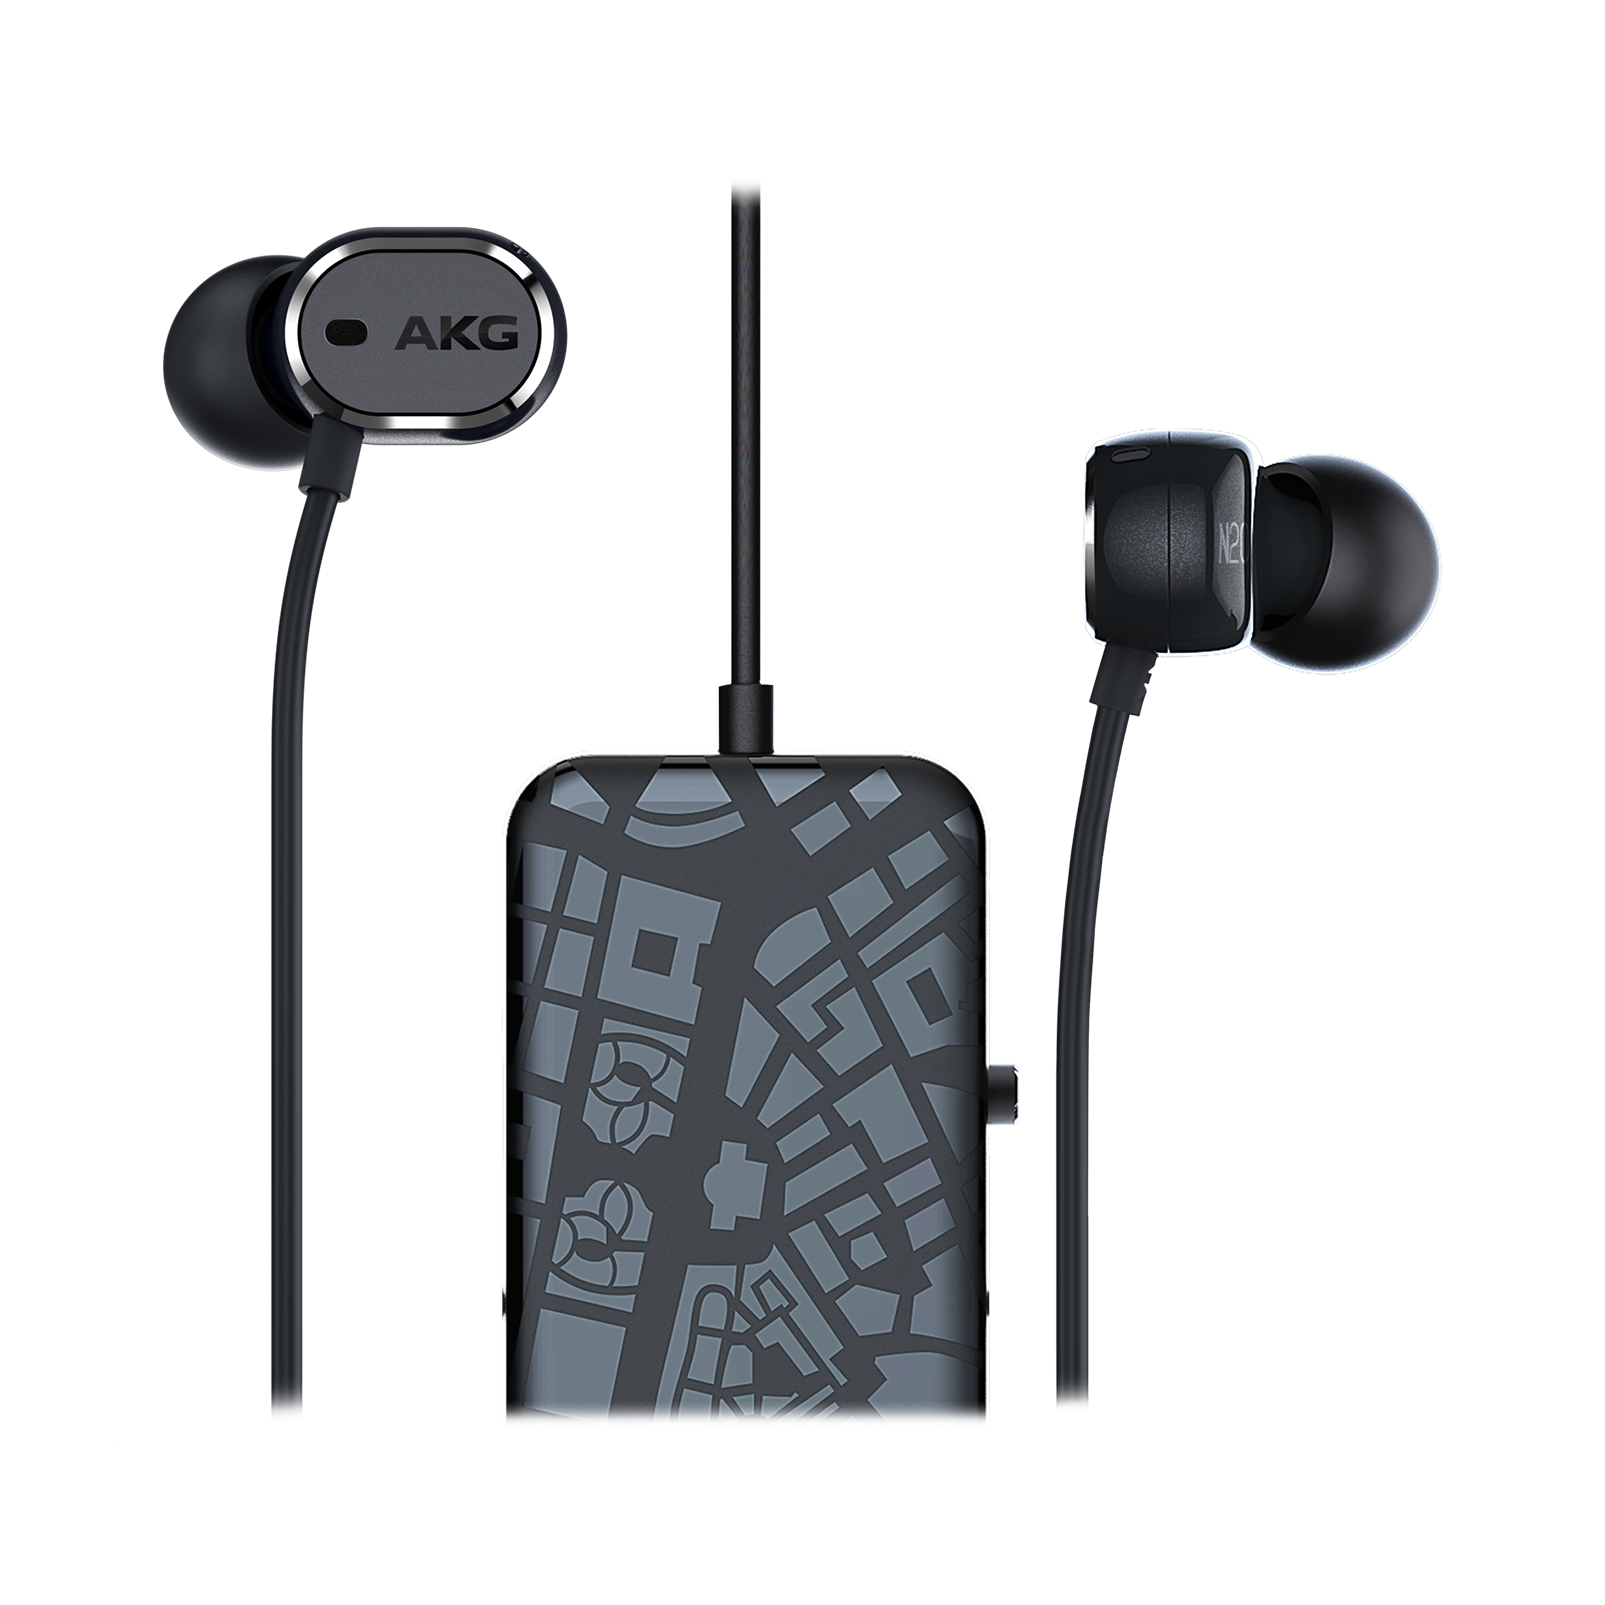 AKG N20NC Wired In Ear Noise Cancelling Headphones $39.99 + Free Shipping